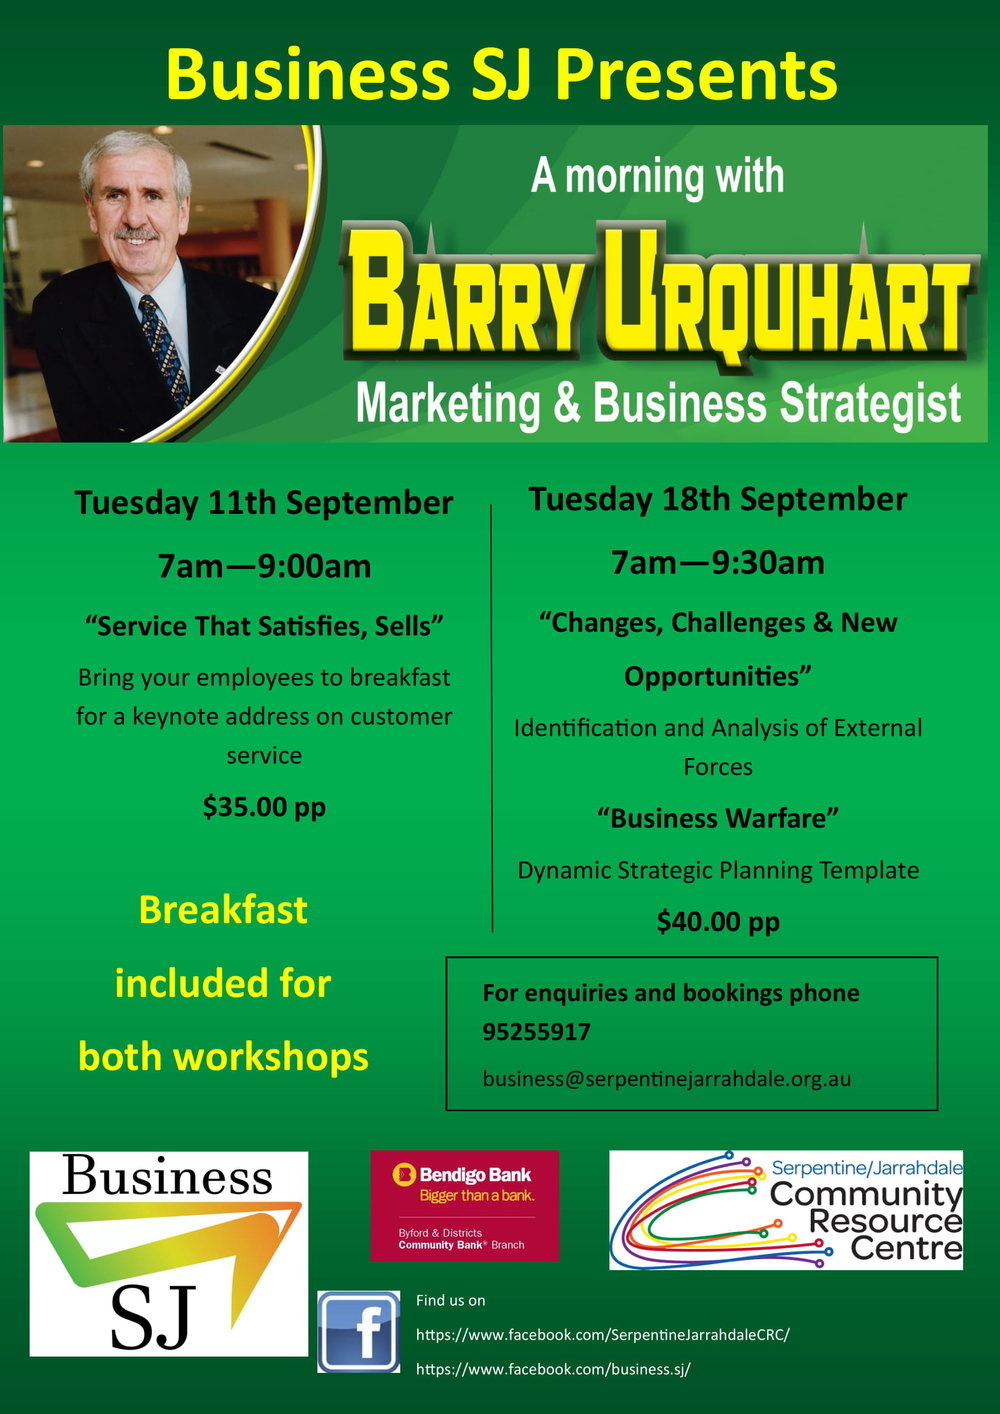 Barry Urquhart Business SJ Presentation Flyer-1.jpg